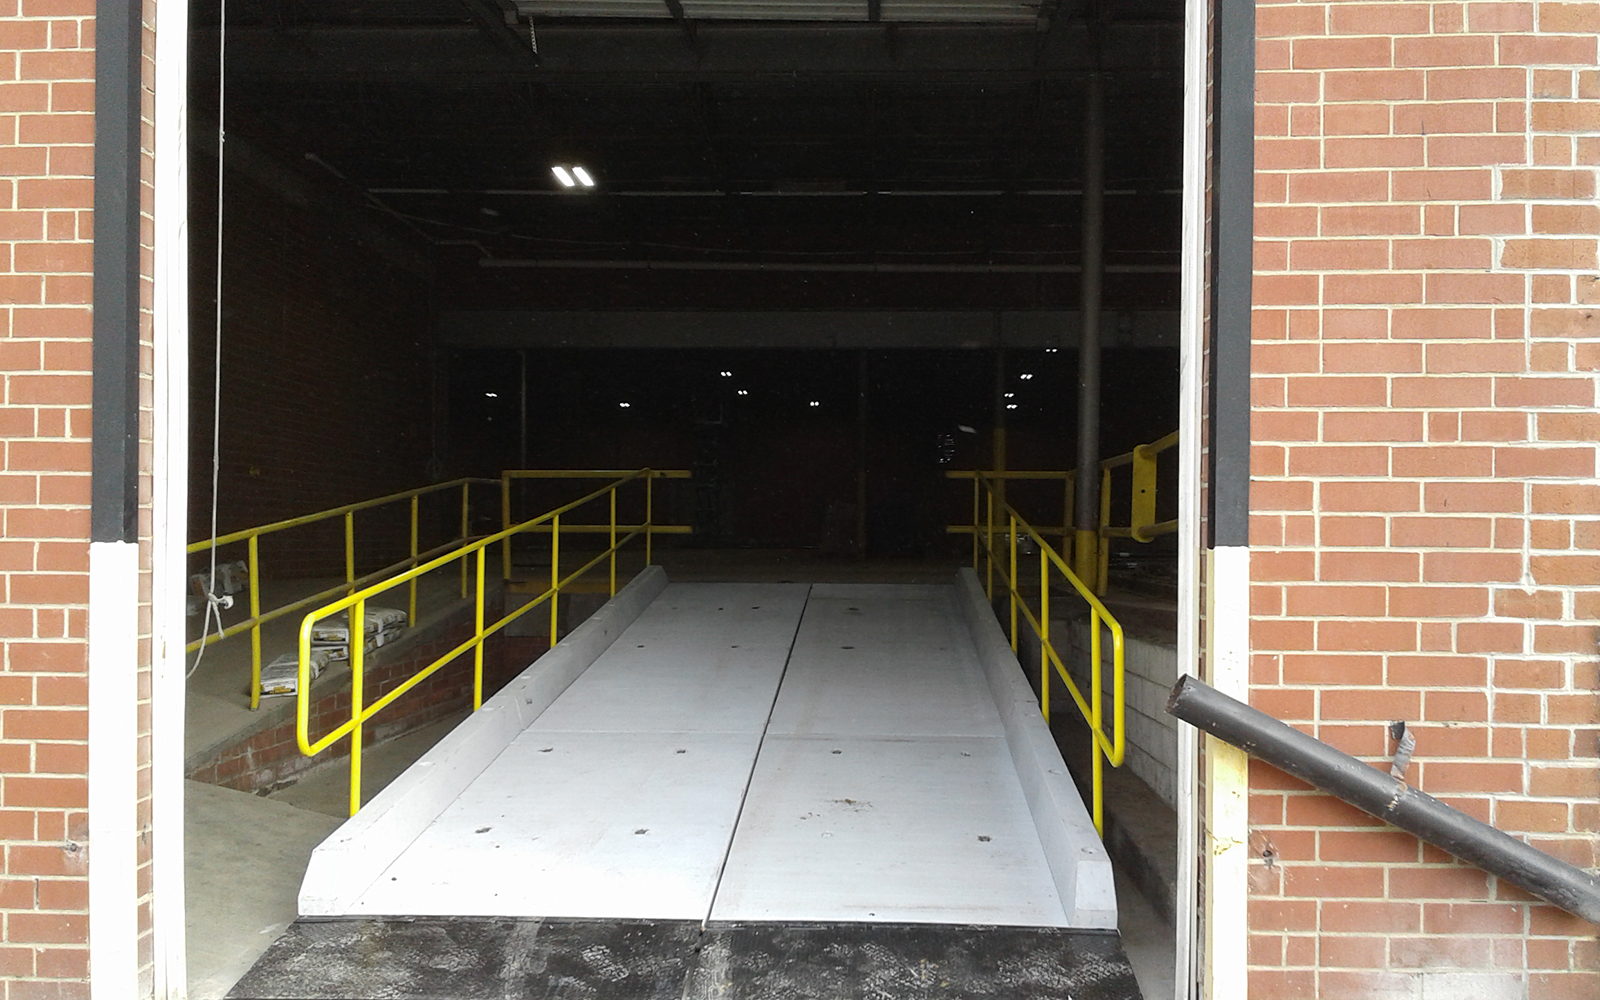 precast-loading-dock-inside-warehouse